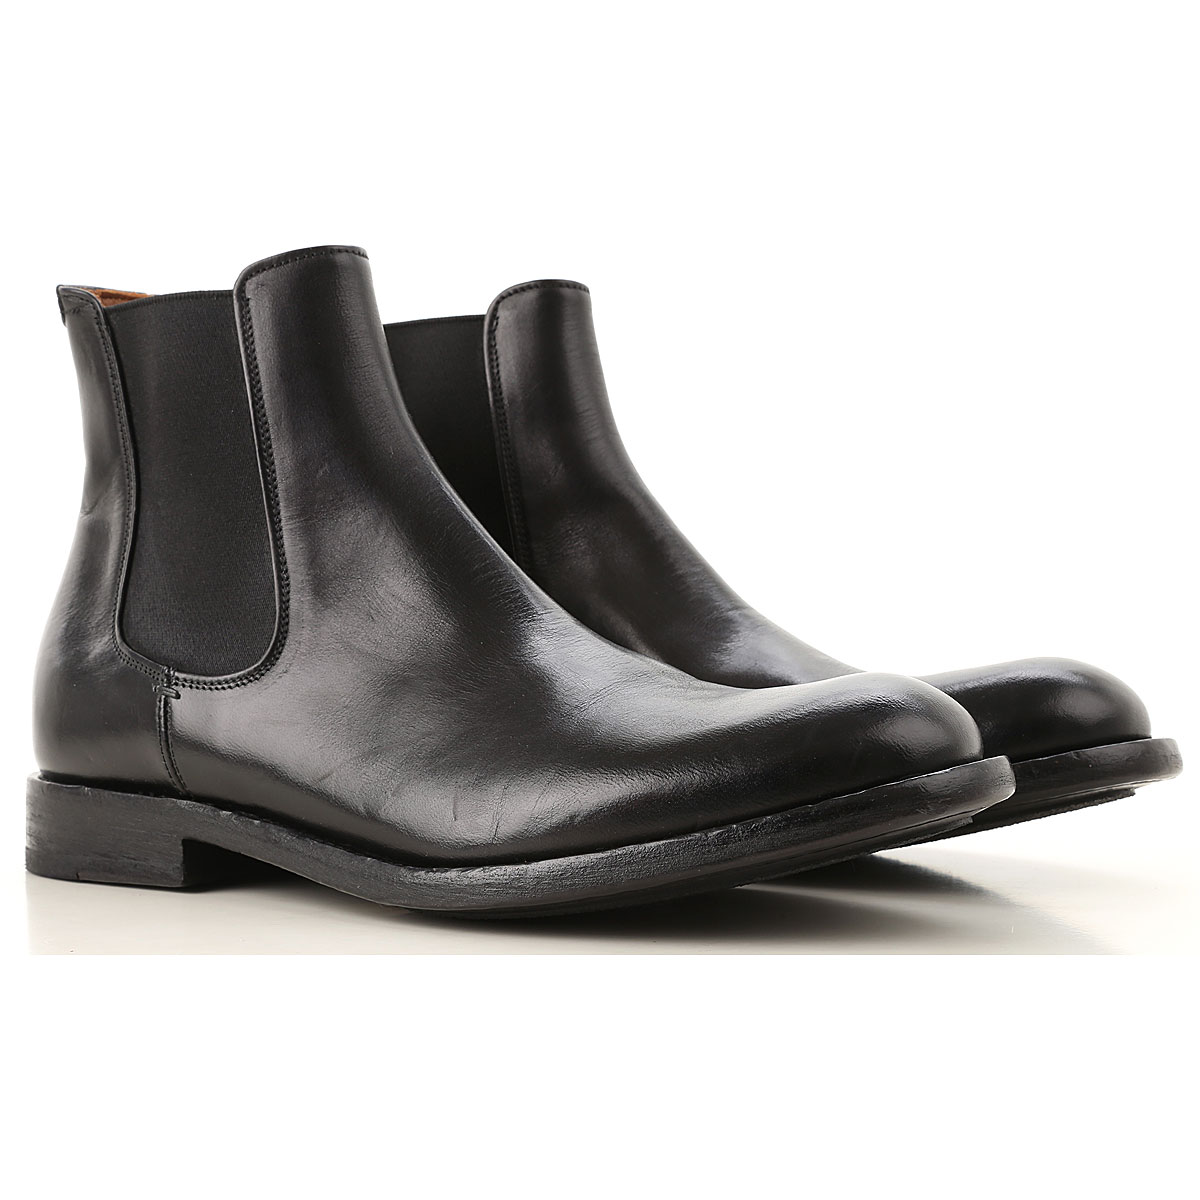 Image of Pantanetti Chelsea Boots for Men, Black, Leather, 2017, 10 10.5 7.5 8 9